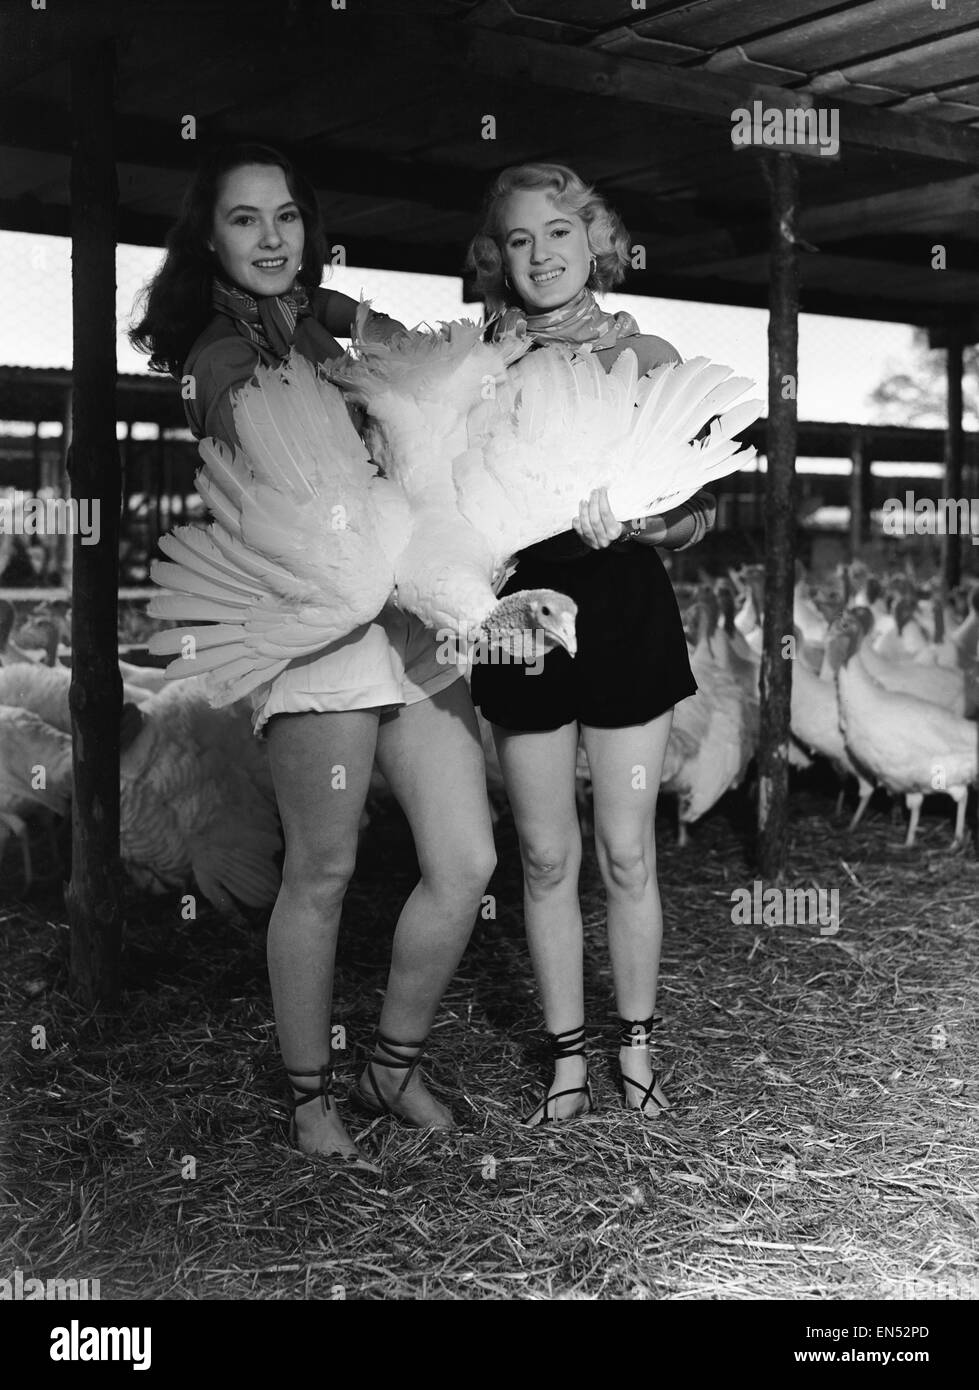 Monica Hasell (left) and friend seen here selecting Christmas turkeys at Happins Farm, Kingshill, Buckinghamshire. - Stock Image